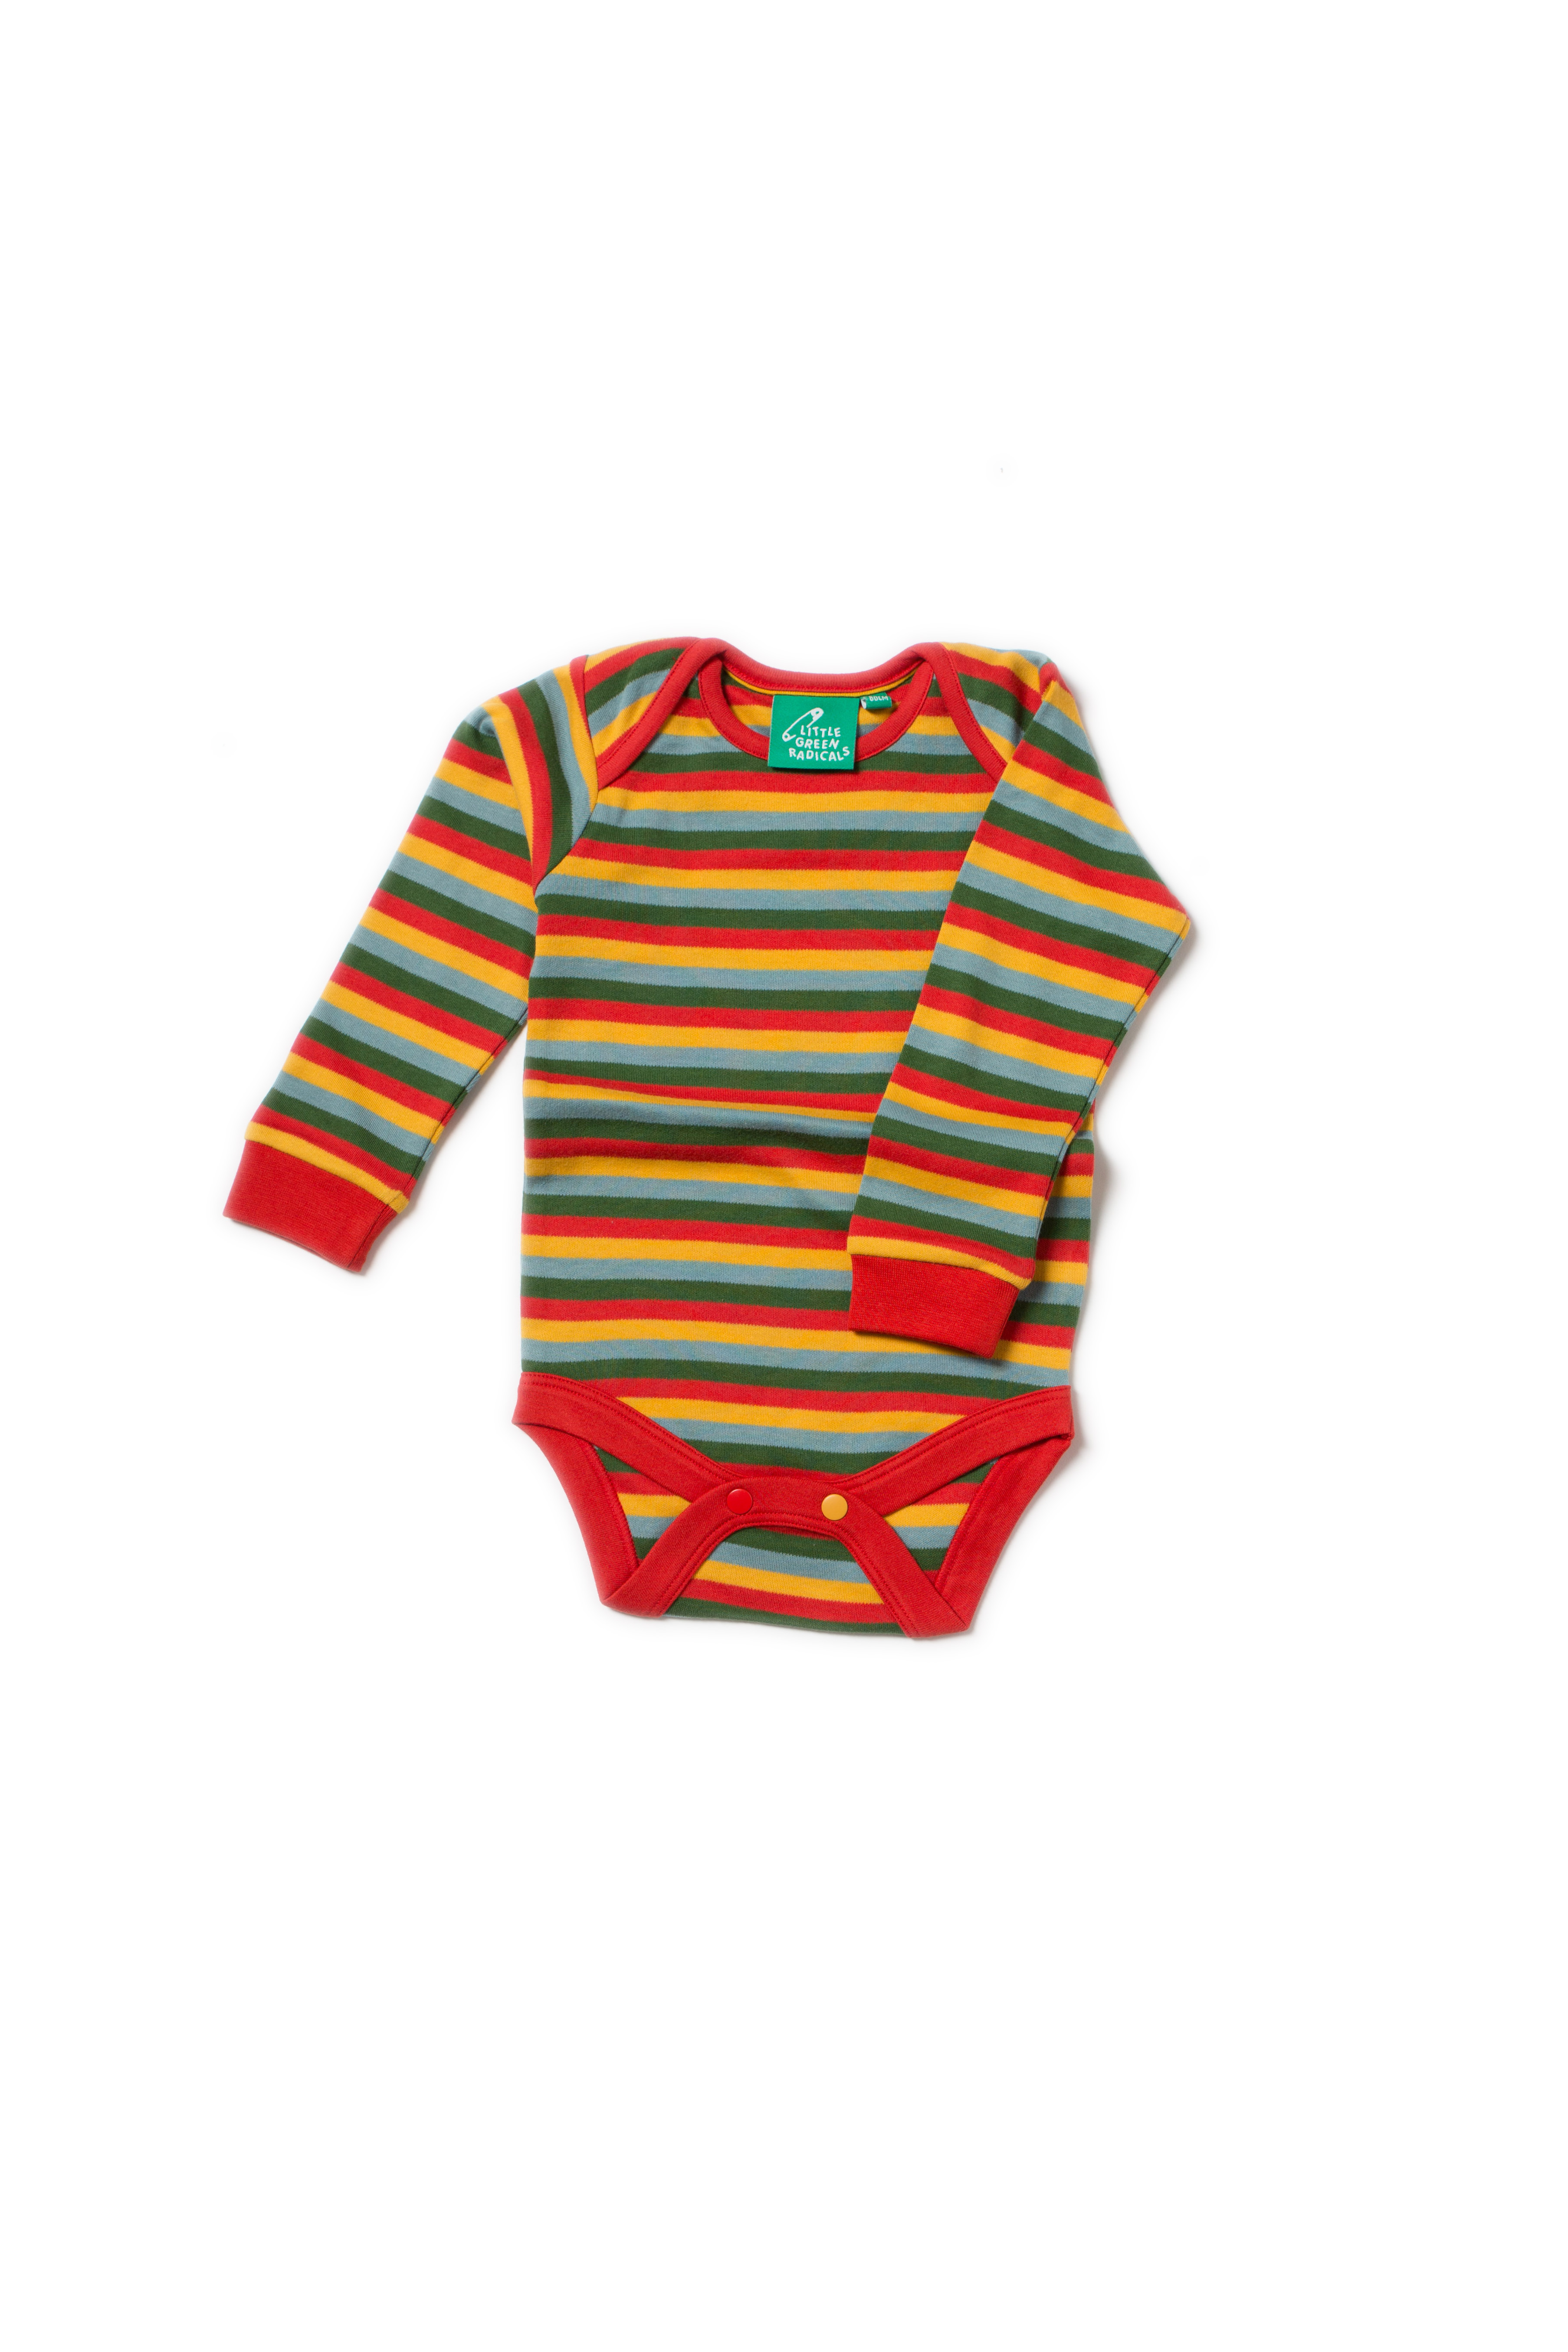 Little Green Radicals - Nordic Viking's two pack baby bady